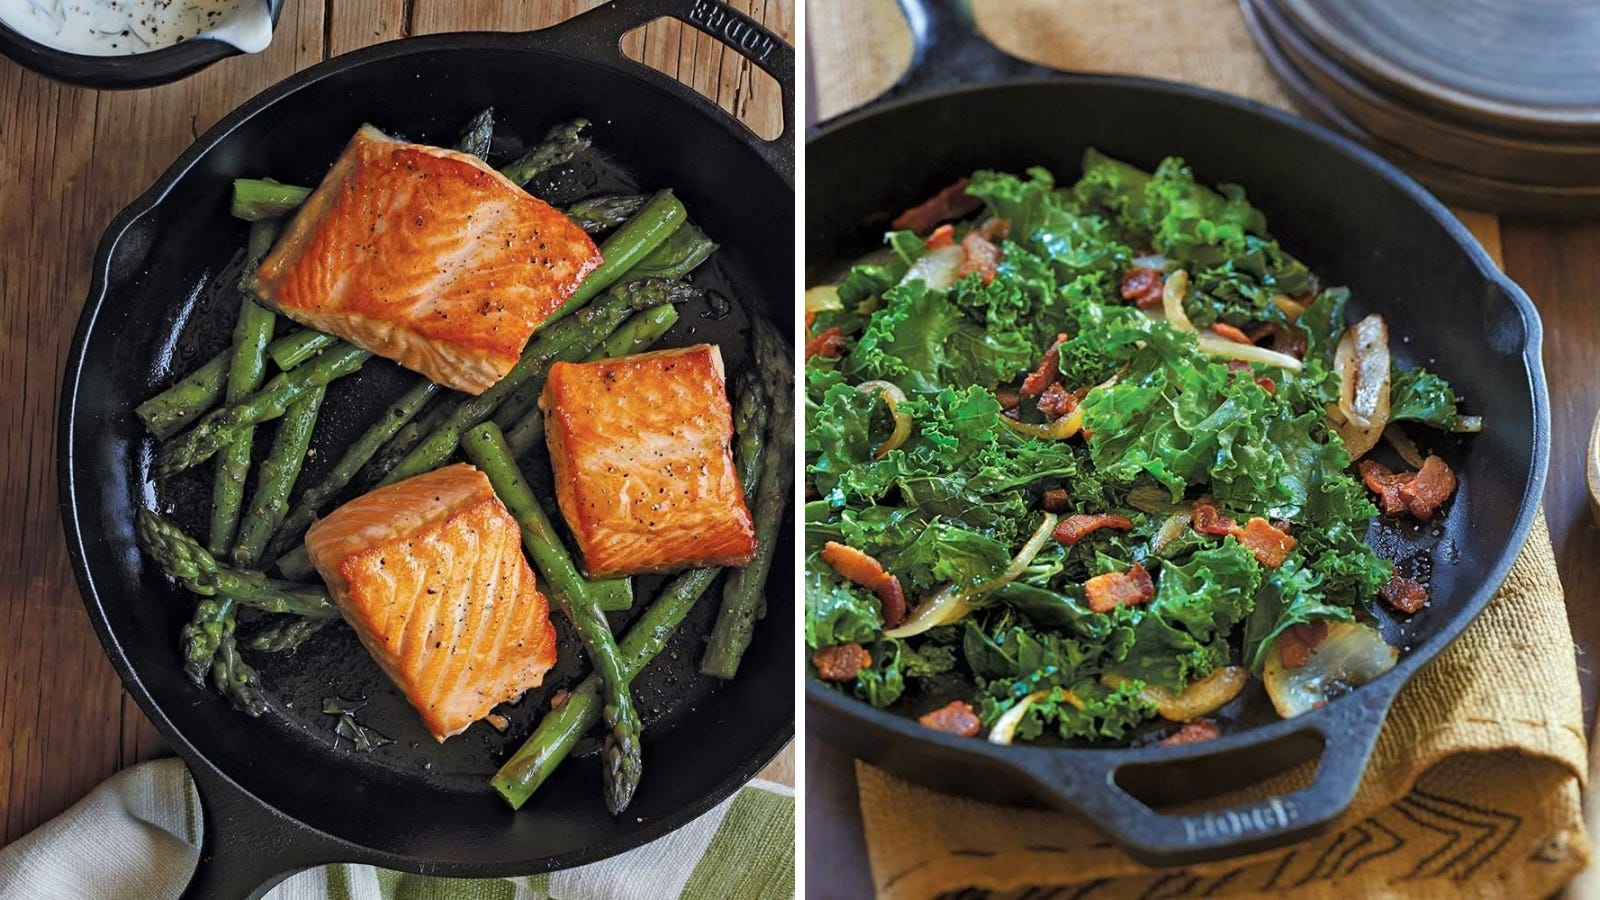 Two images displaying the Lodge cast iron skillet. The left image displays a seared salmon and asparagus dinner and the right image features a kale, onion and bacon side dish, made in the skillet.